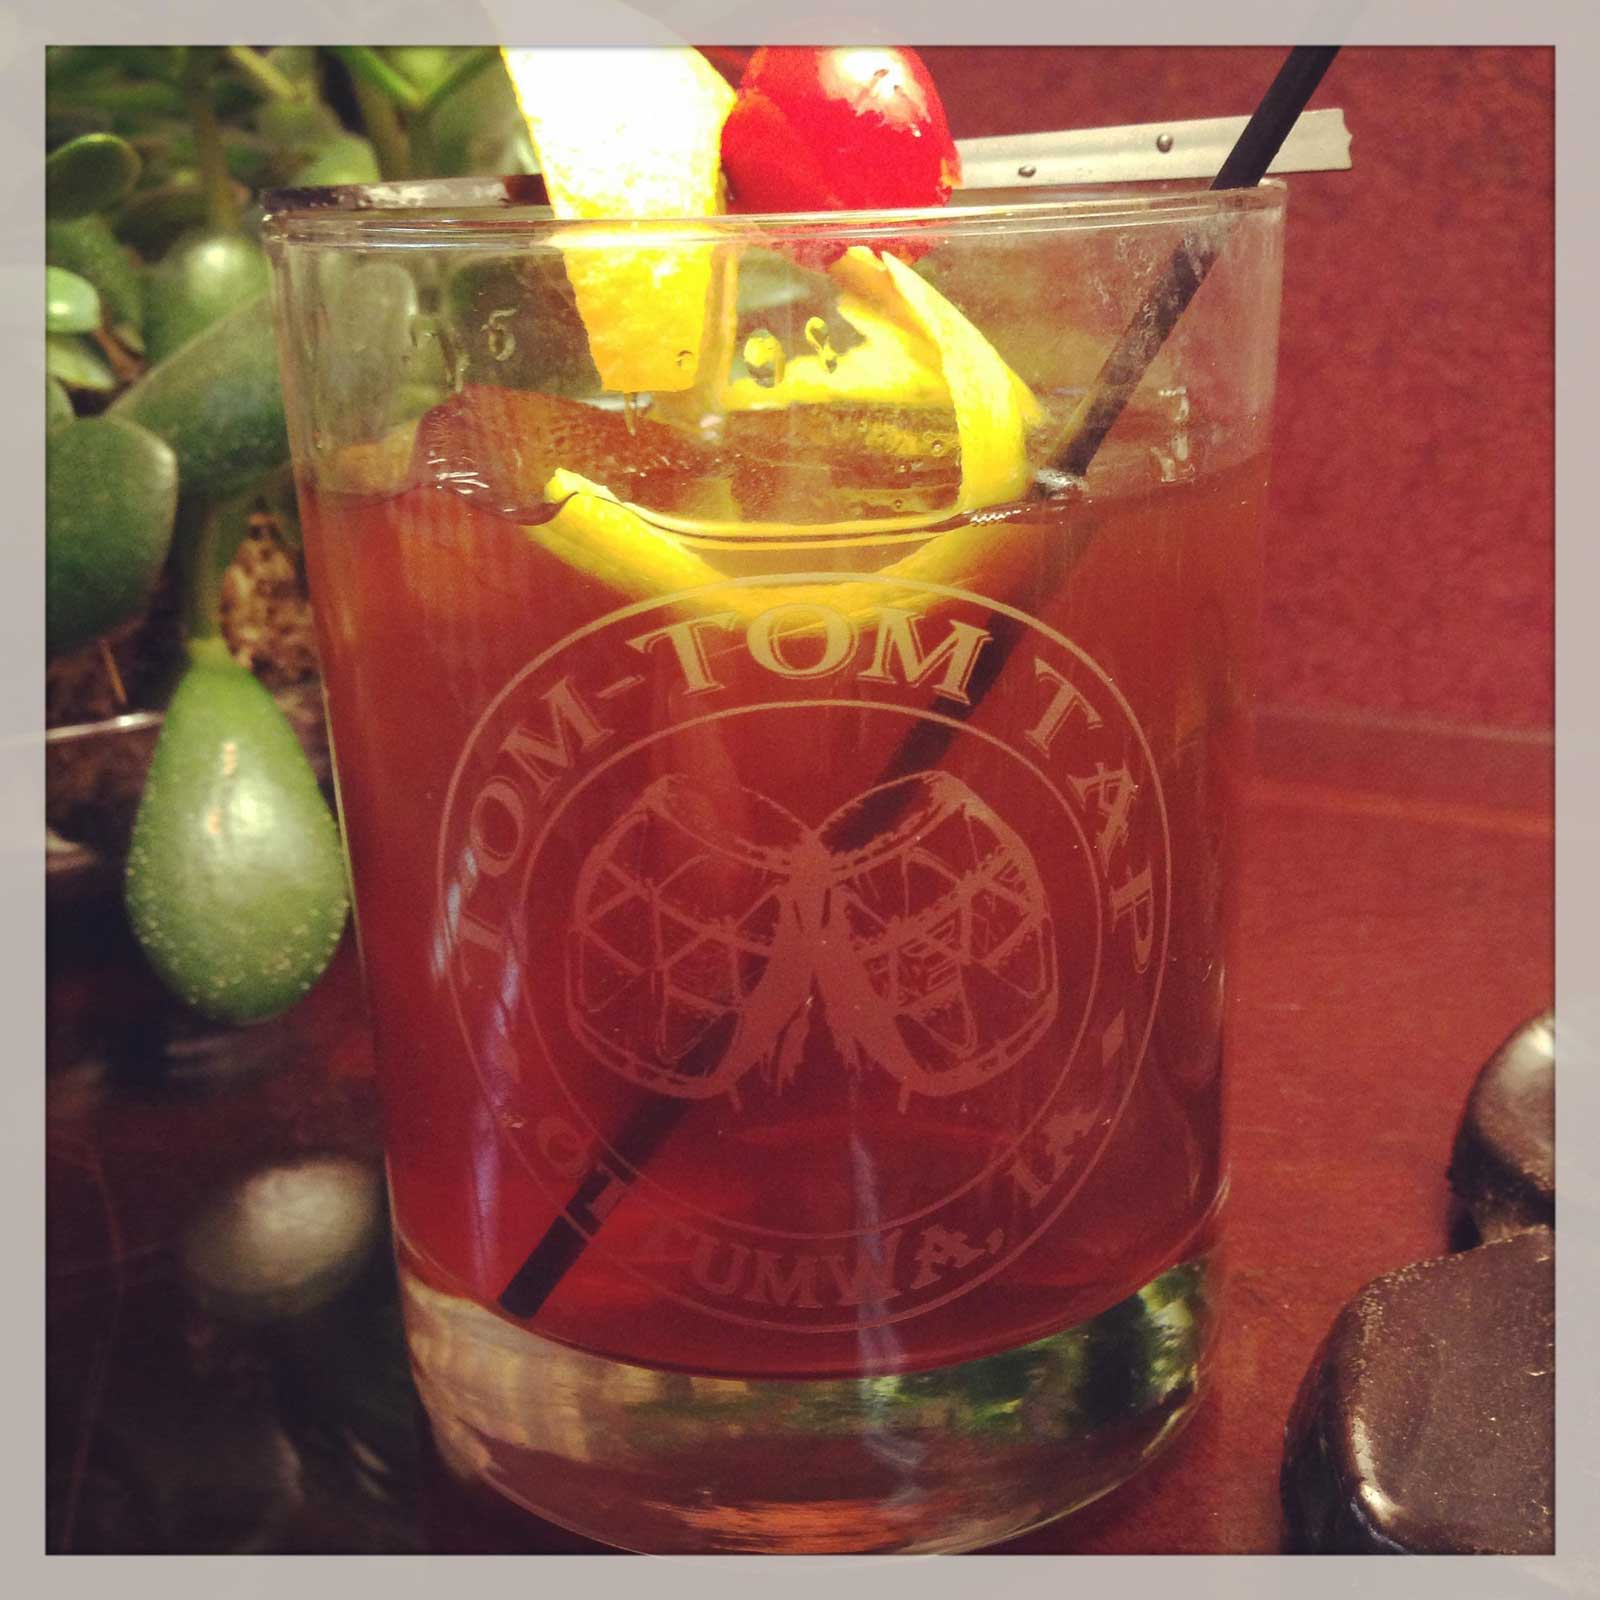 Tom-Tom Tap Old Fashioned Cocatil in a Glass